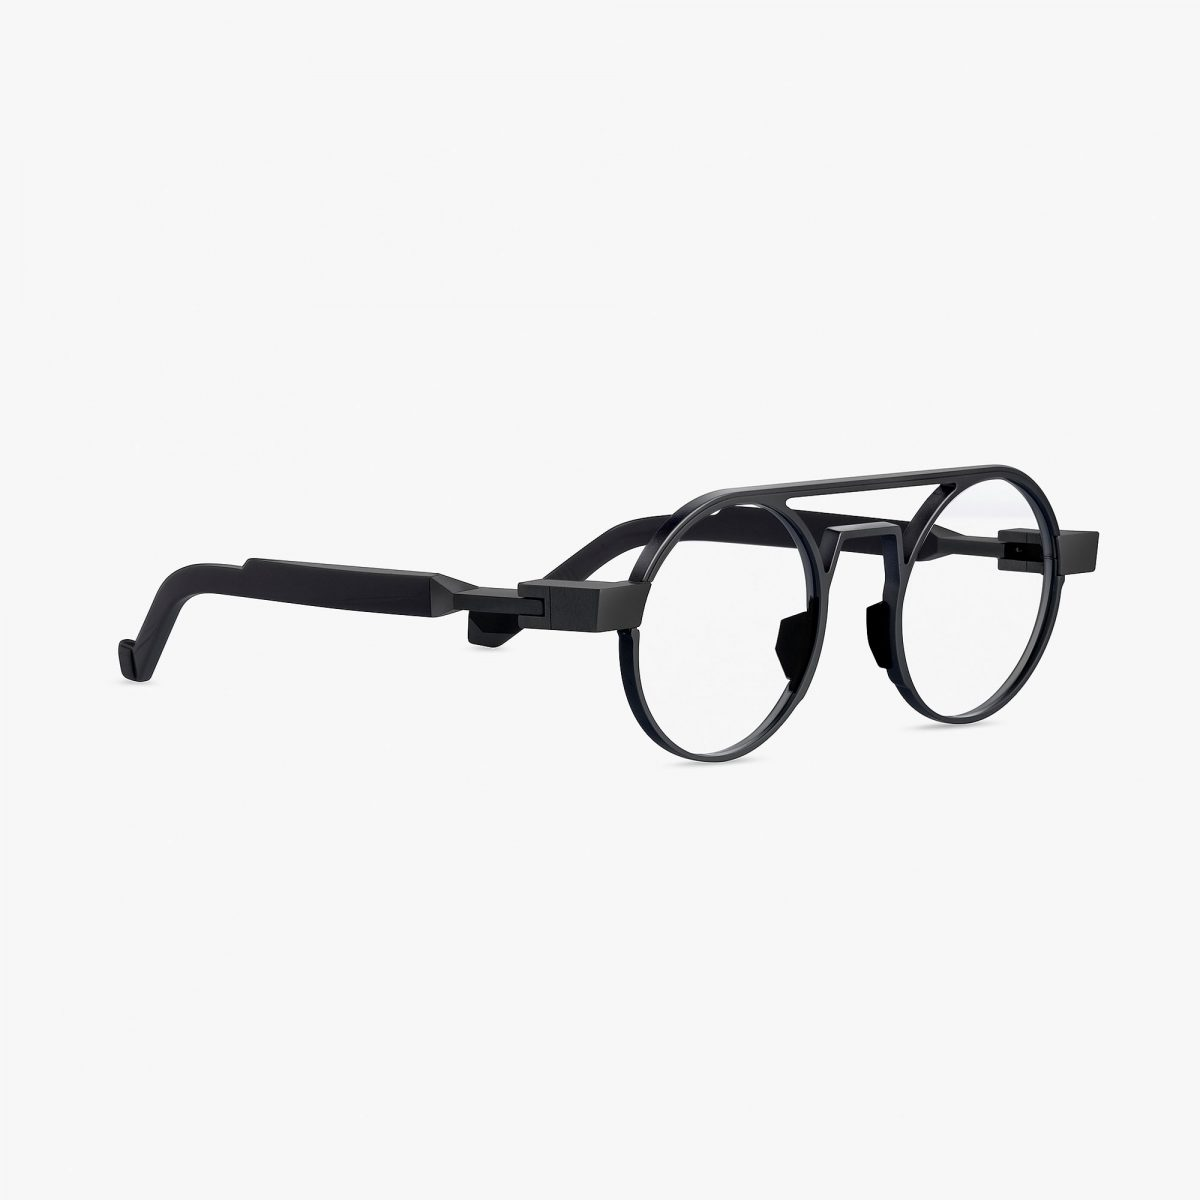 VAVA EYEWEAR ONLINE SHOP WL0018 BLACK SIDE